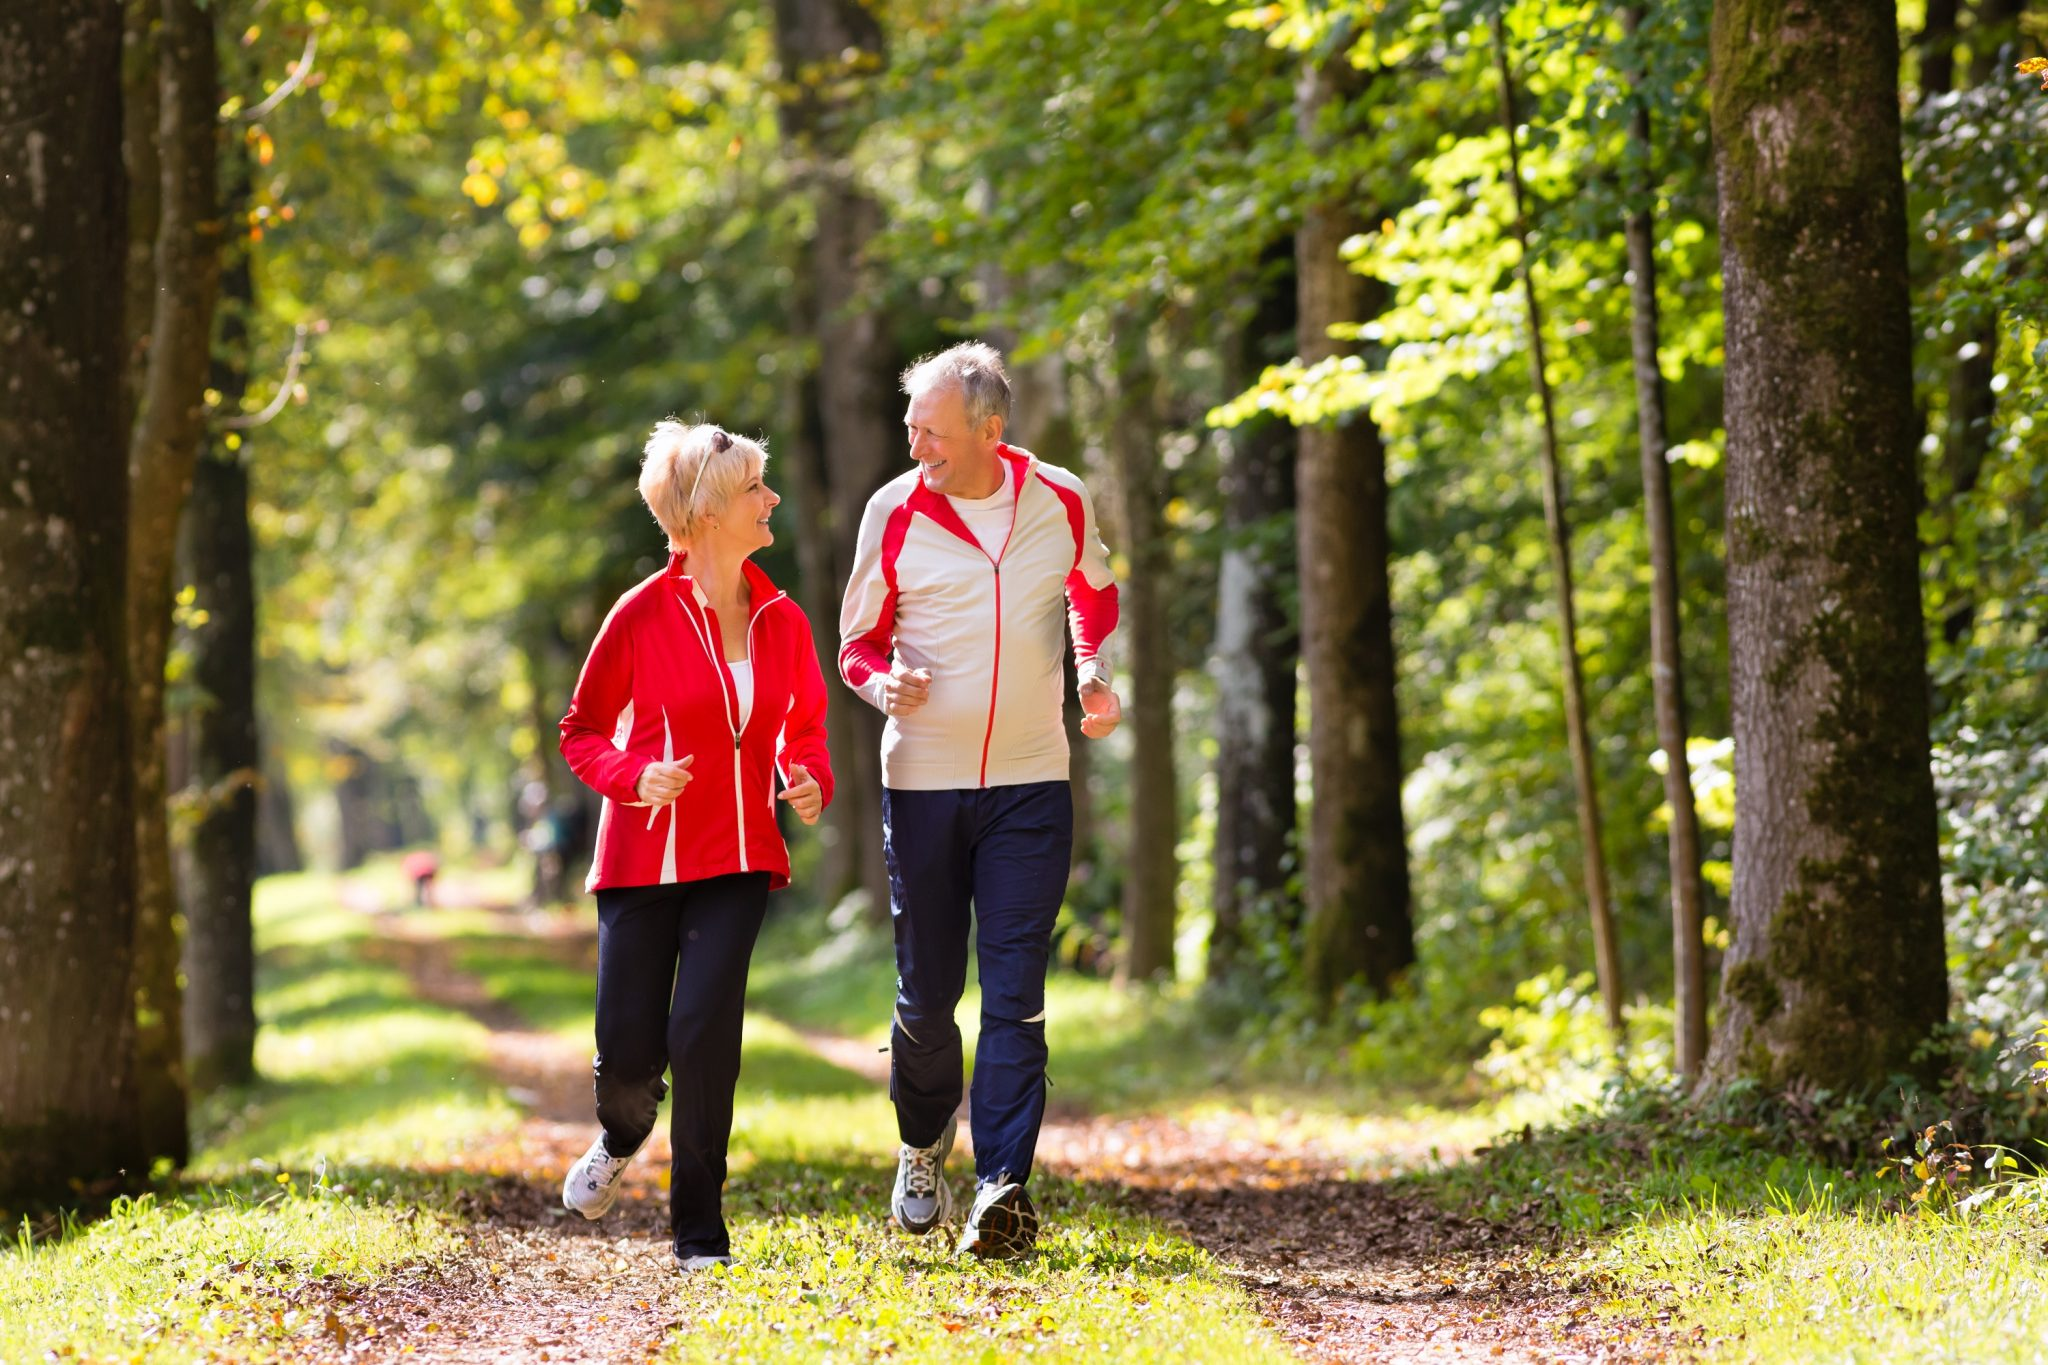 Healthy-Aging-Life